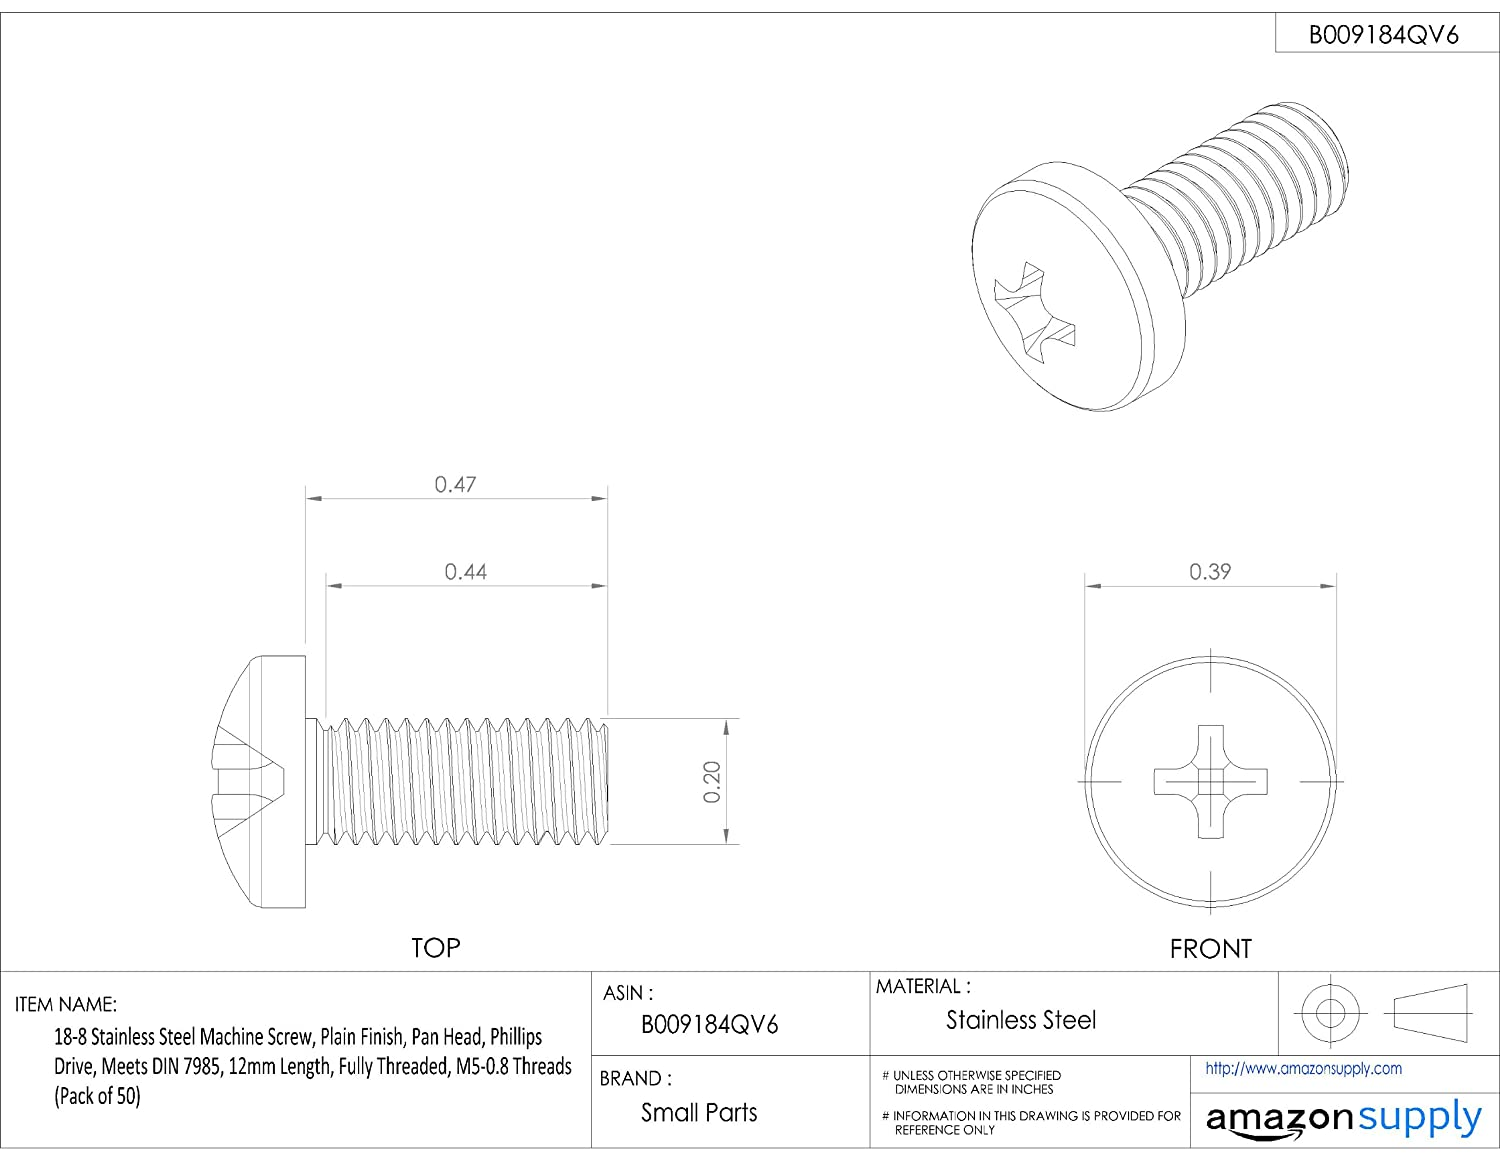 Fully Threaded Plain Finish 12mm Length 18-8 Stainless Steel Machine Screw Small Parts B-7985A2PH5X12-B50 Pack of 50 M5-0.8 Metric Coarse Threads Phillips Drive Meets DIN 7985 Pan Head